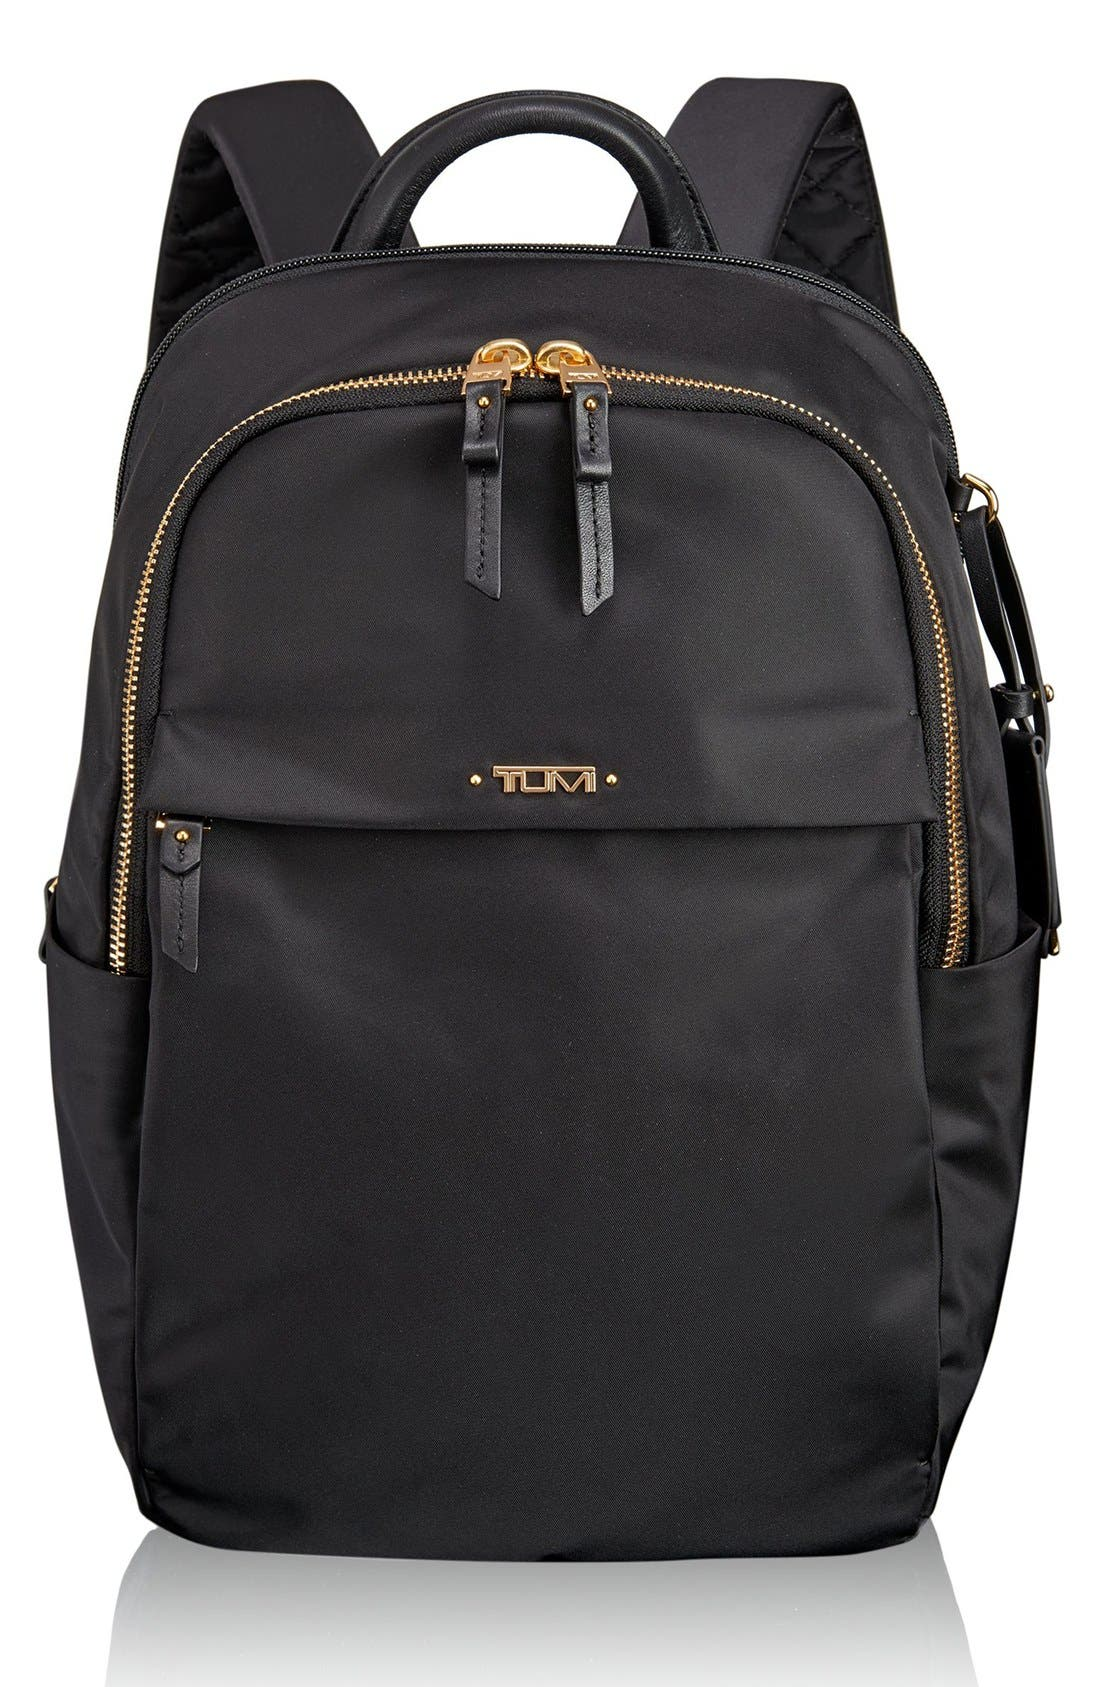 Main Image - Tumi 'Voyageur - Small Daniella' Backpack